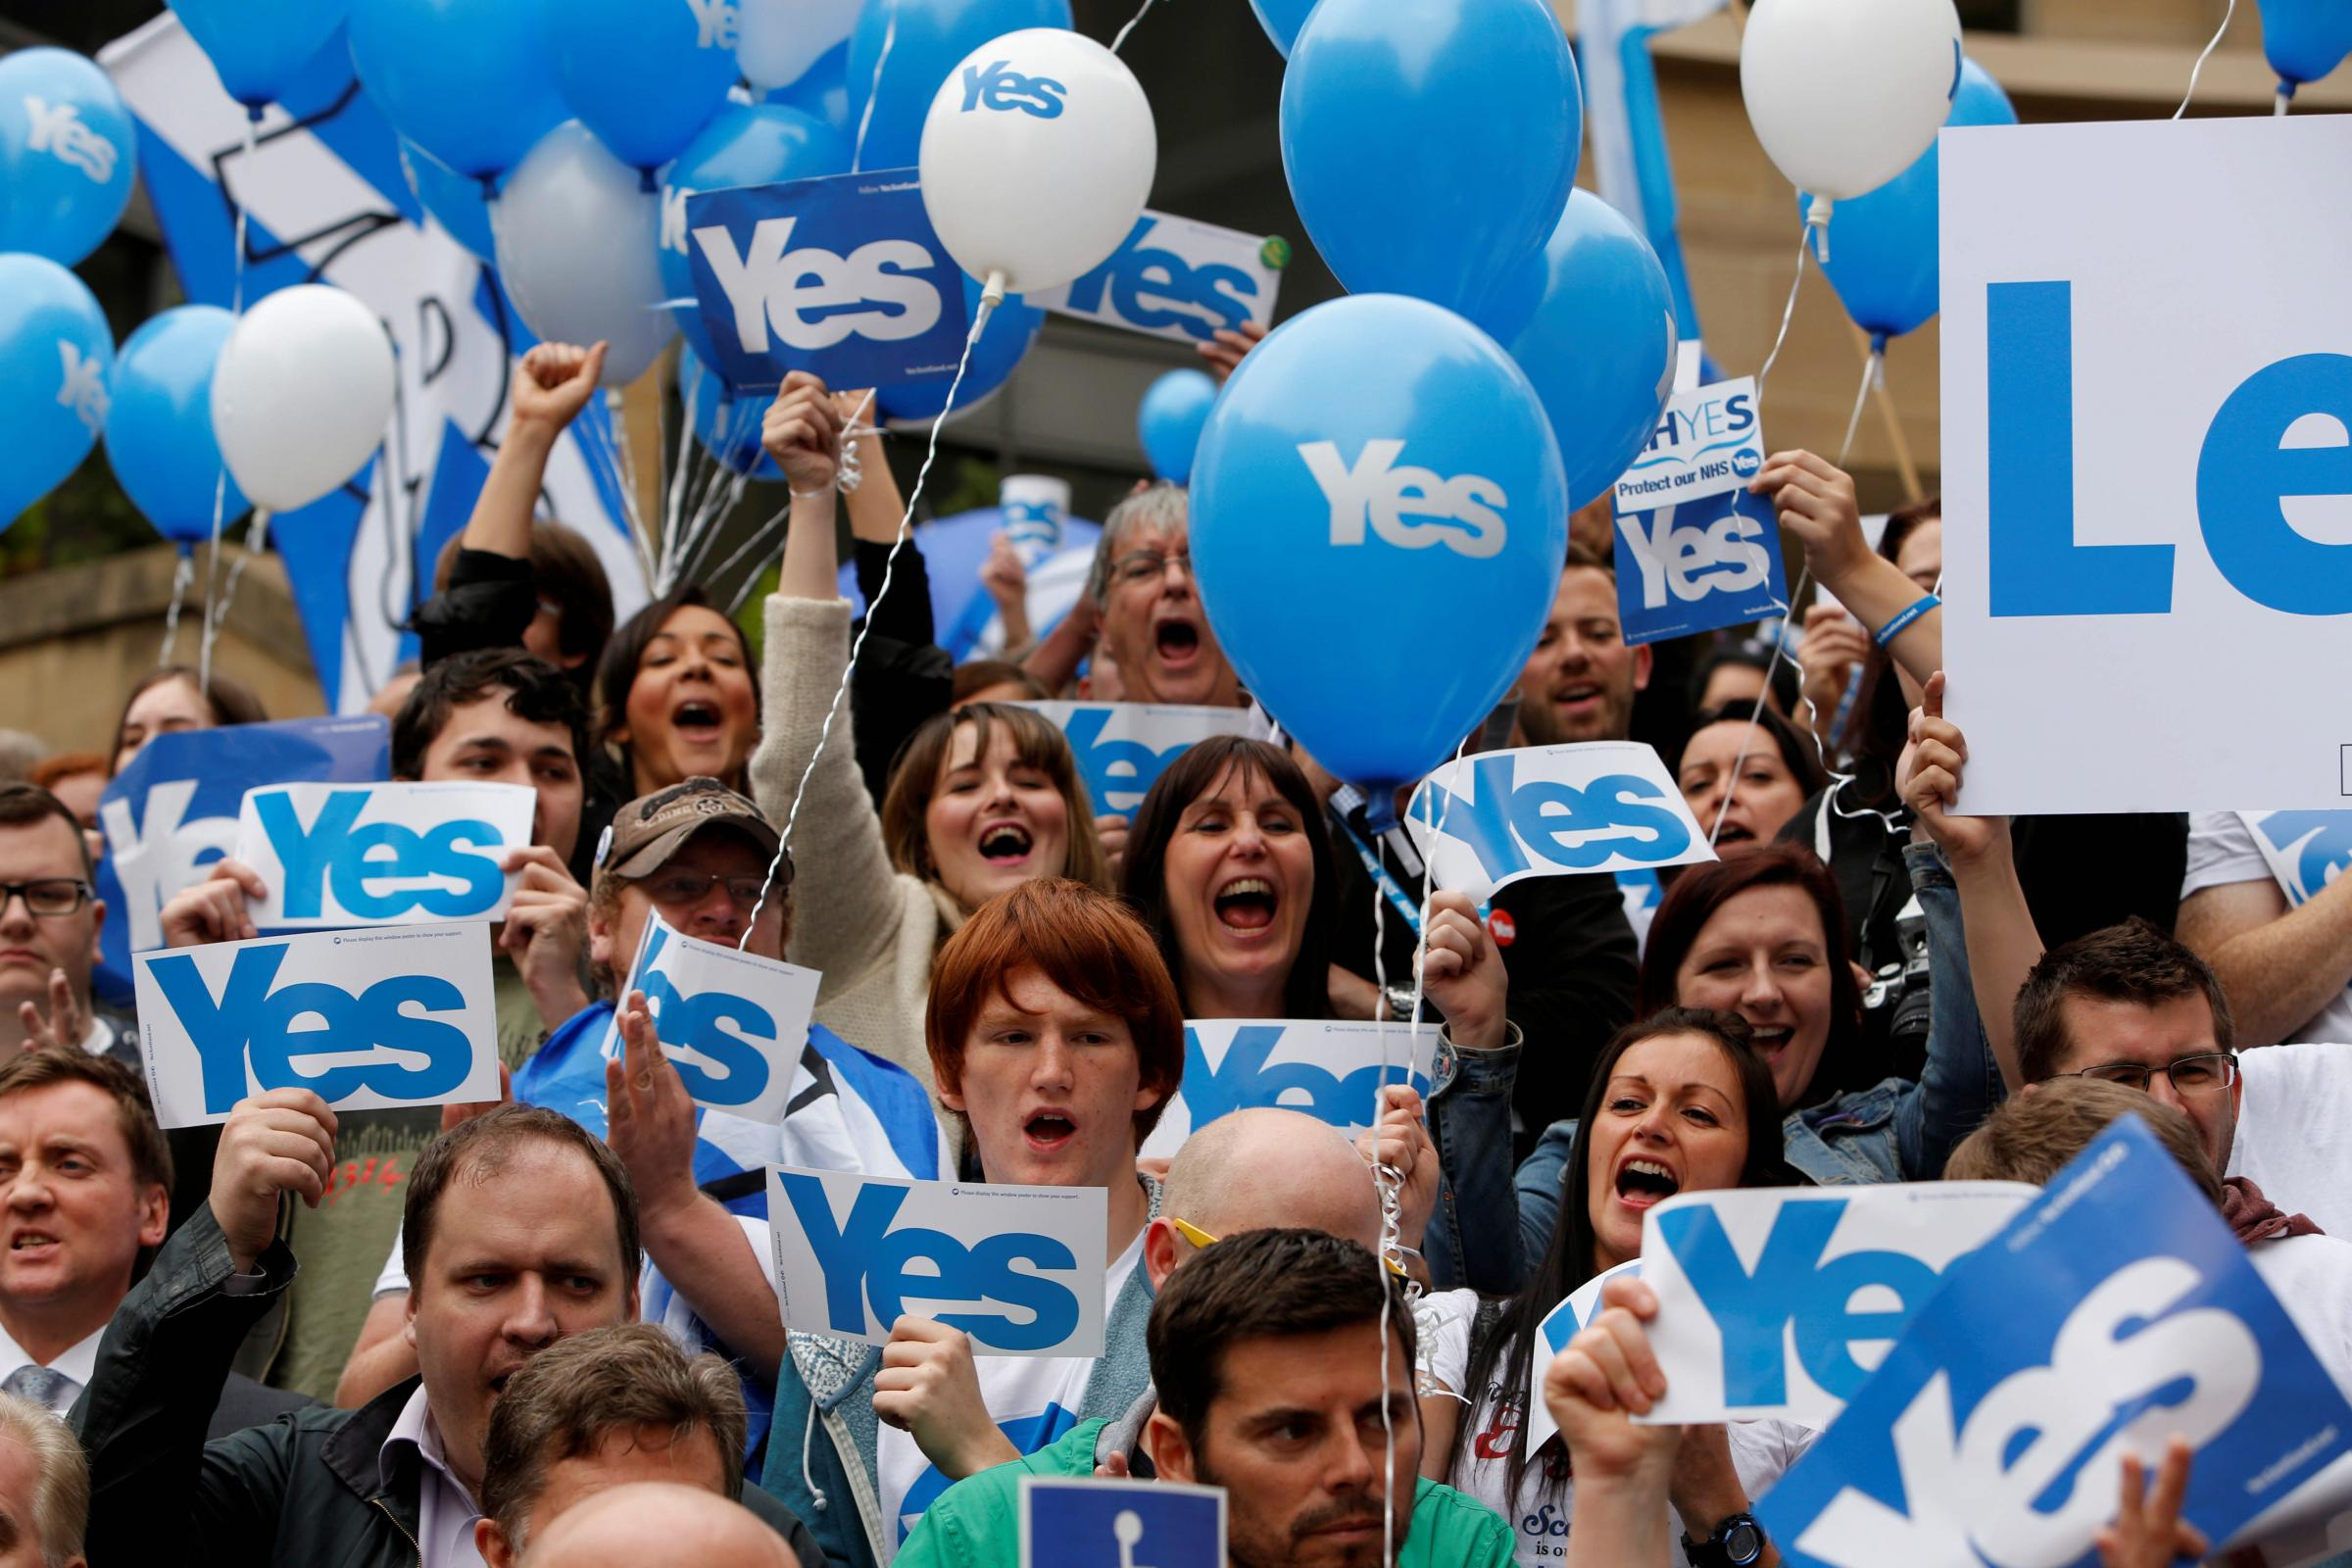 We can't allow the moaning minnies to scupper our chances - national scot